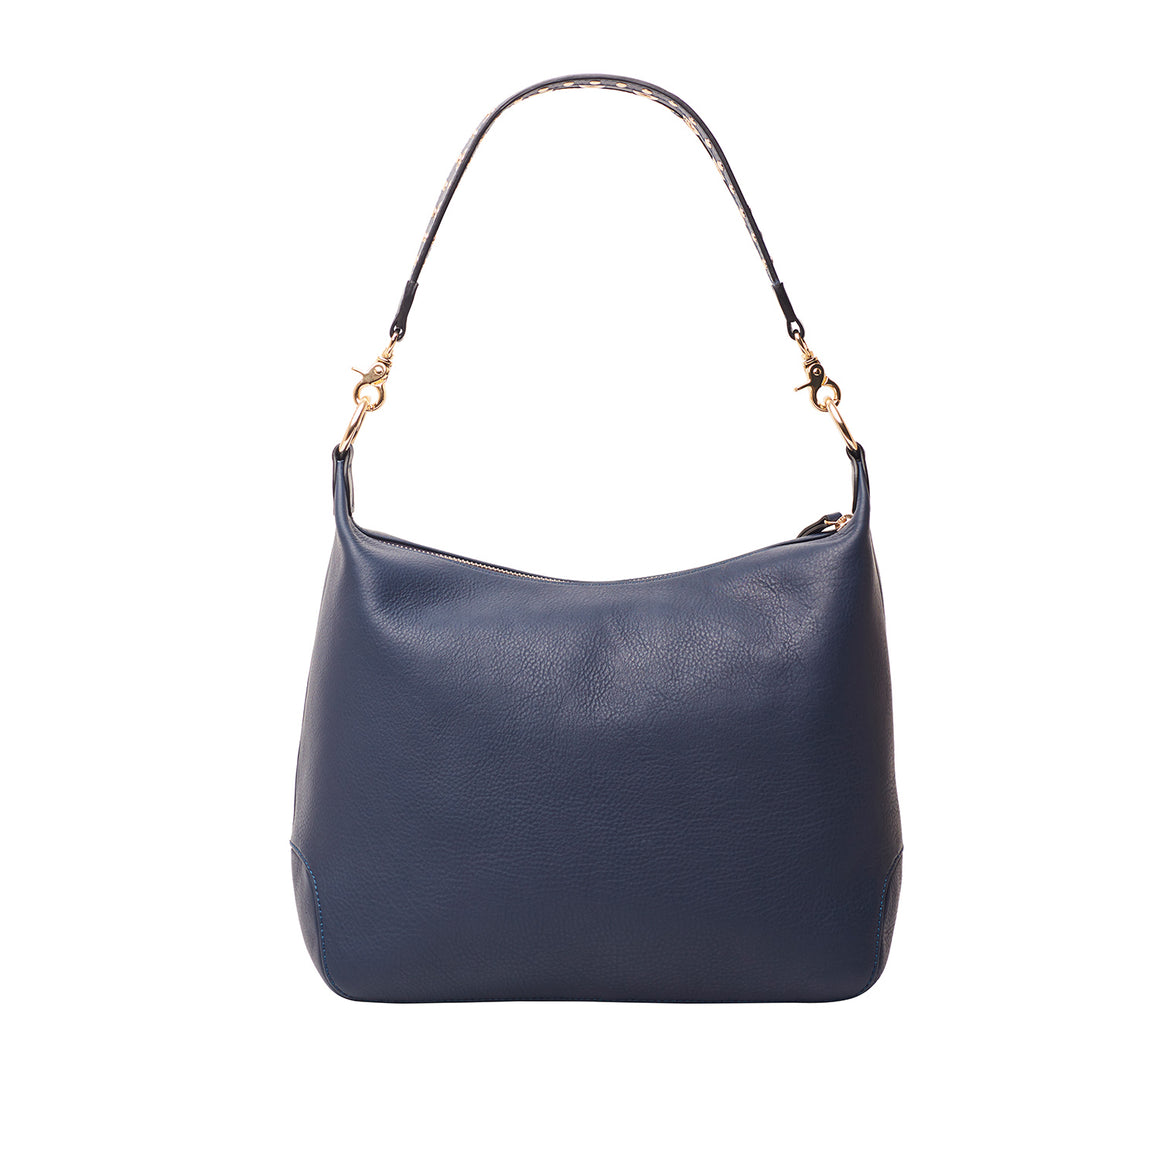 SB 0026 - TOHL FENCHURCH WOMEN'S SHOULDER BAG - INDIGO BLUE